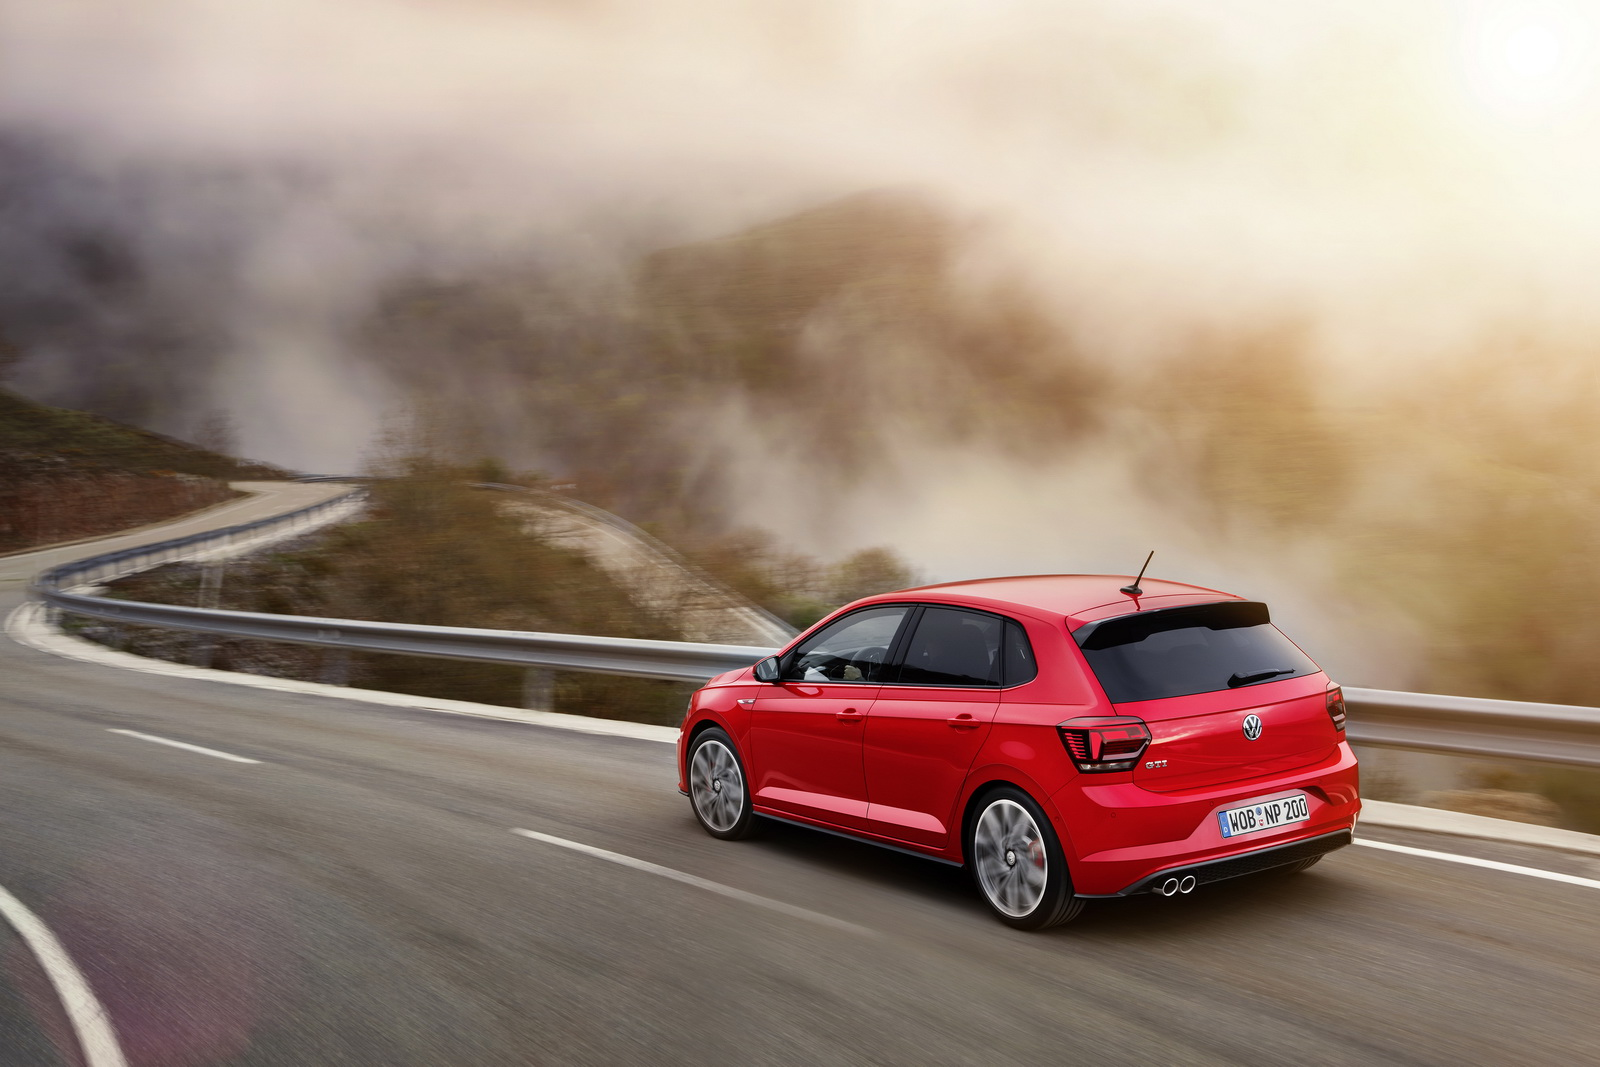 Volkswagen Polo and Polo GTI 2018 (47)